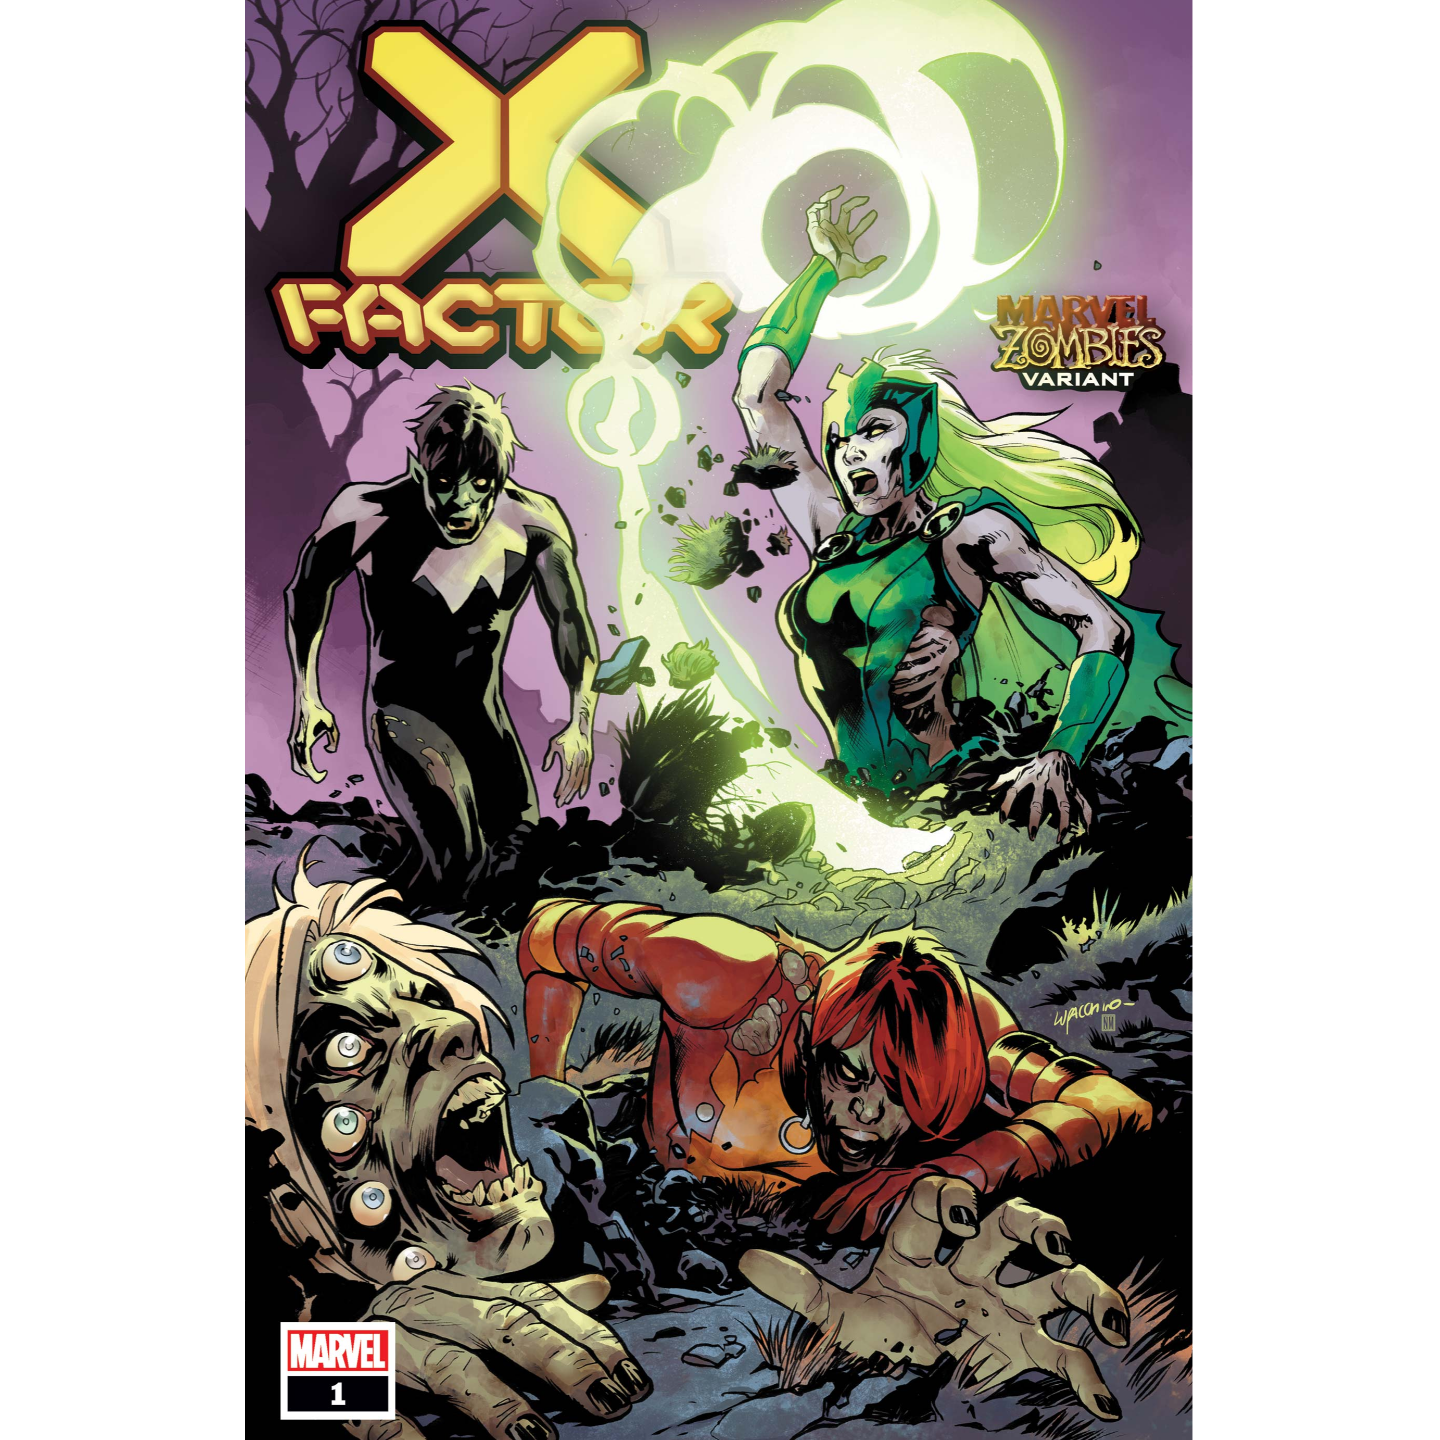 X-FACTOR #1 LUPACCHINO MARVEL ZOMBIES VAR